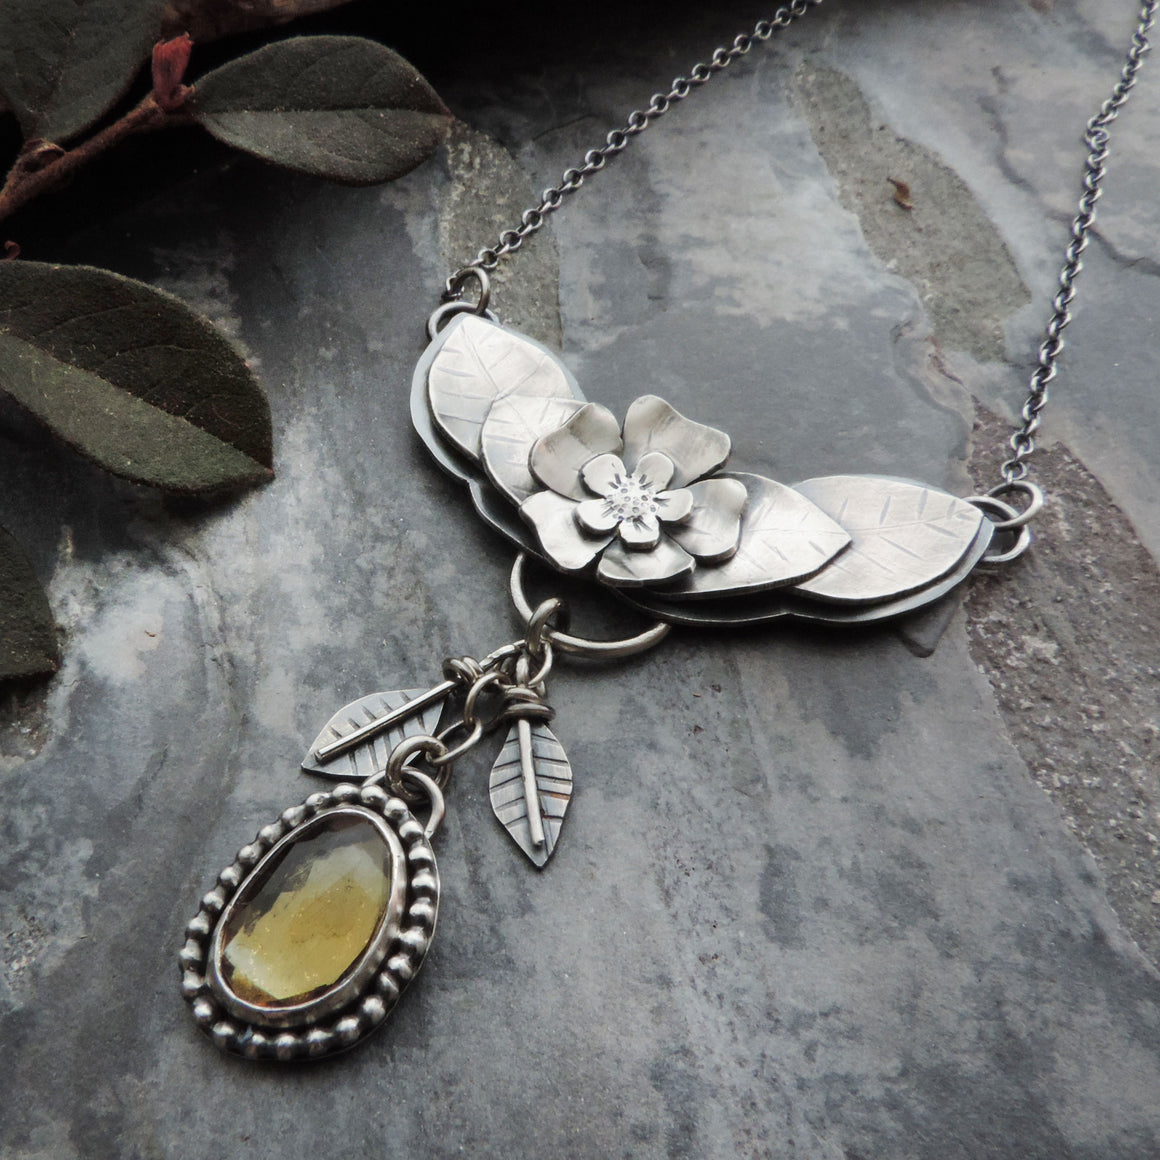 Flower and Leaves Necklace with Citrine Gemstone Drop